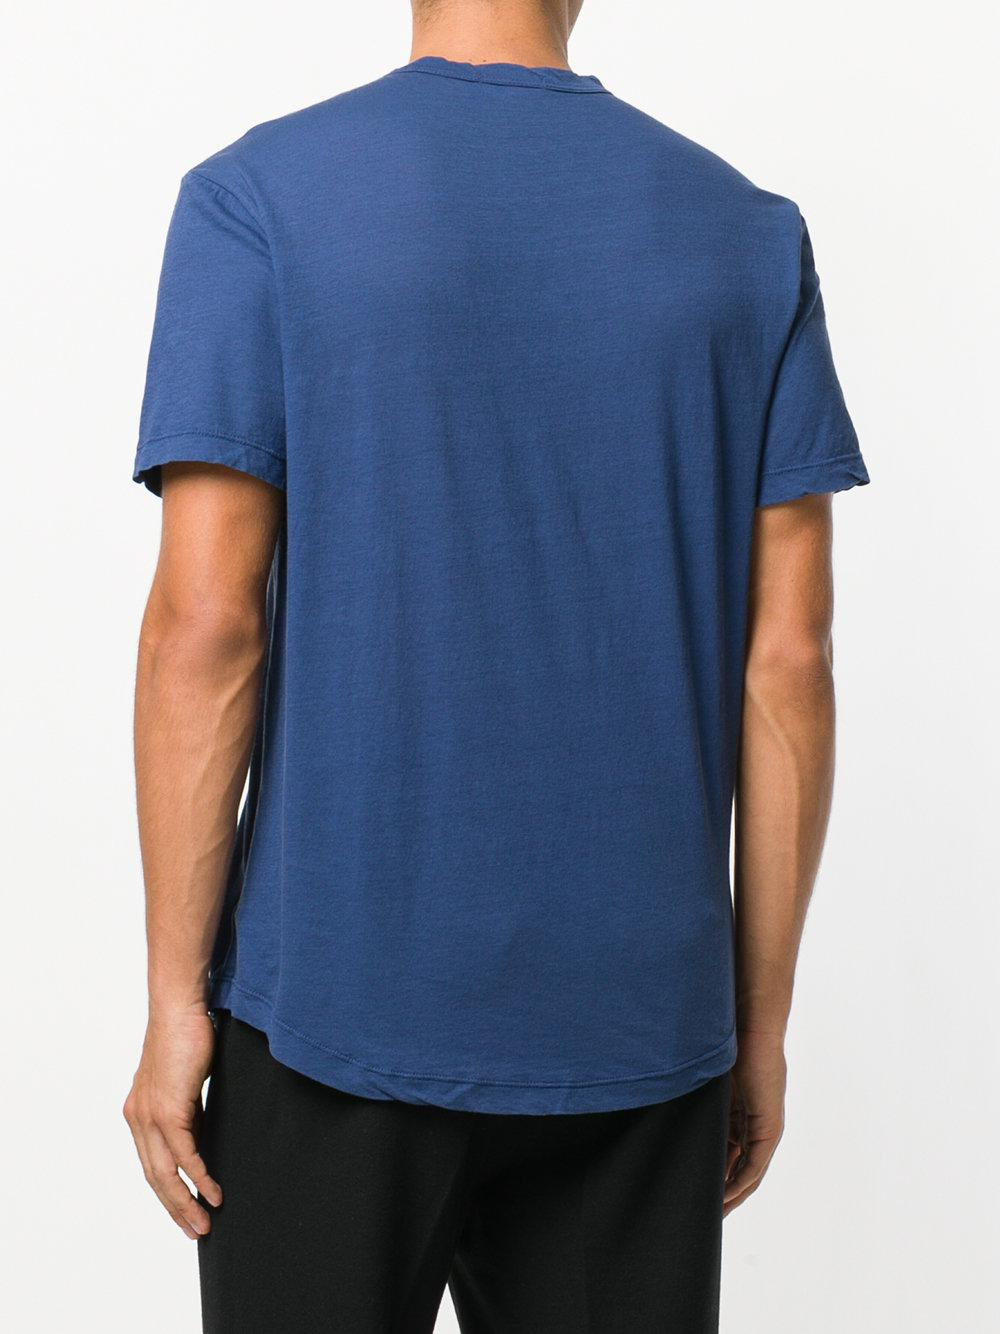 Lyst james perse plain t shirt in blue for men for James perse t shirts sale